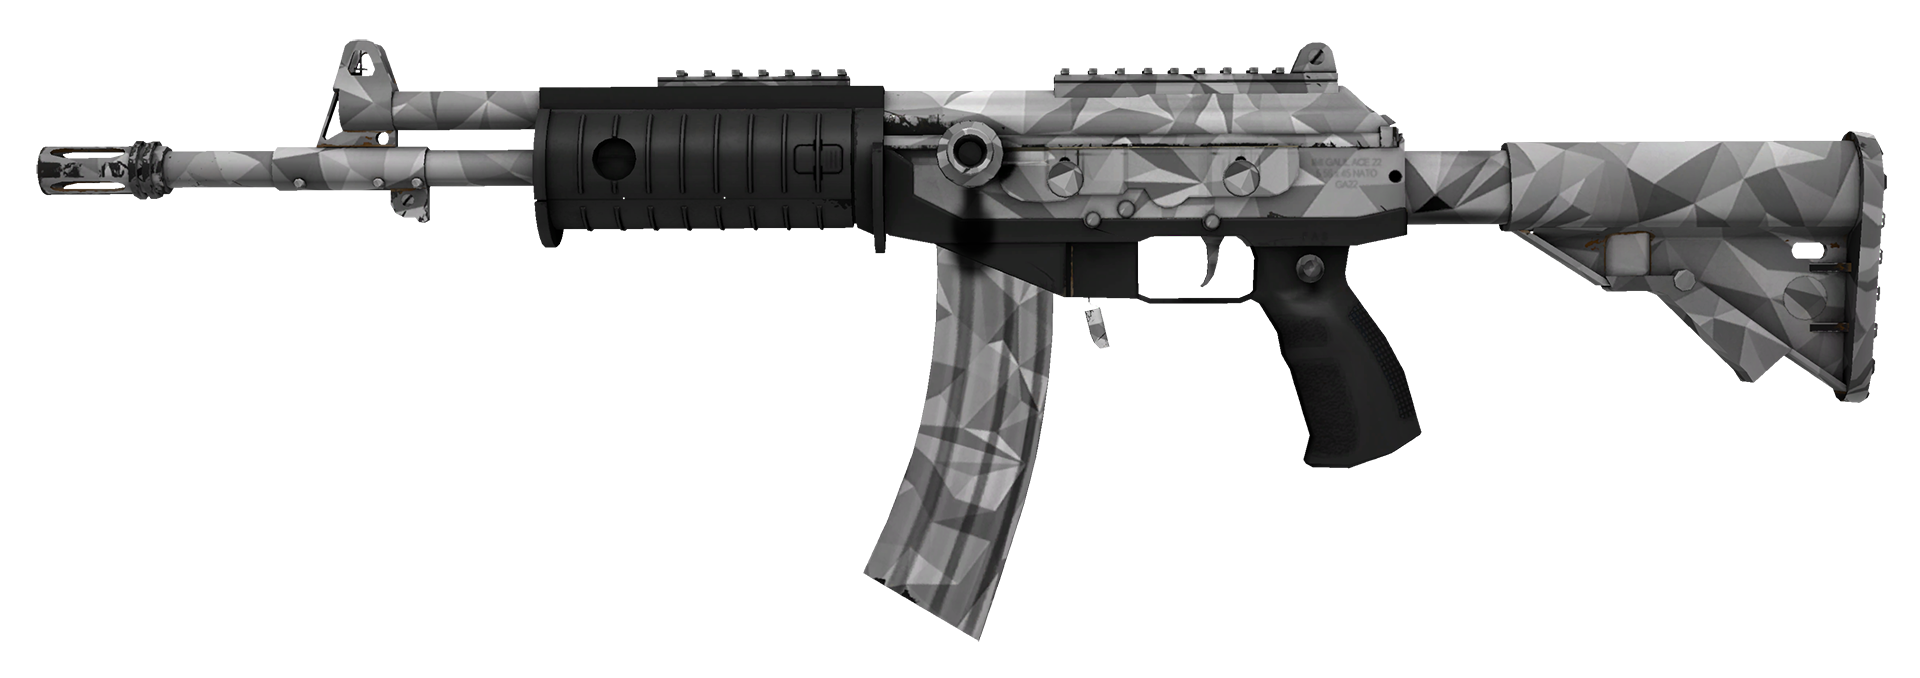 Galil AR Shattered Large Rendering